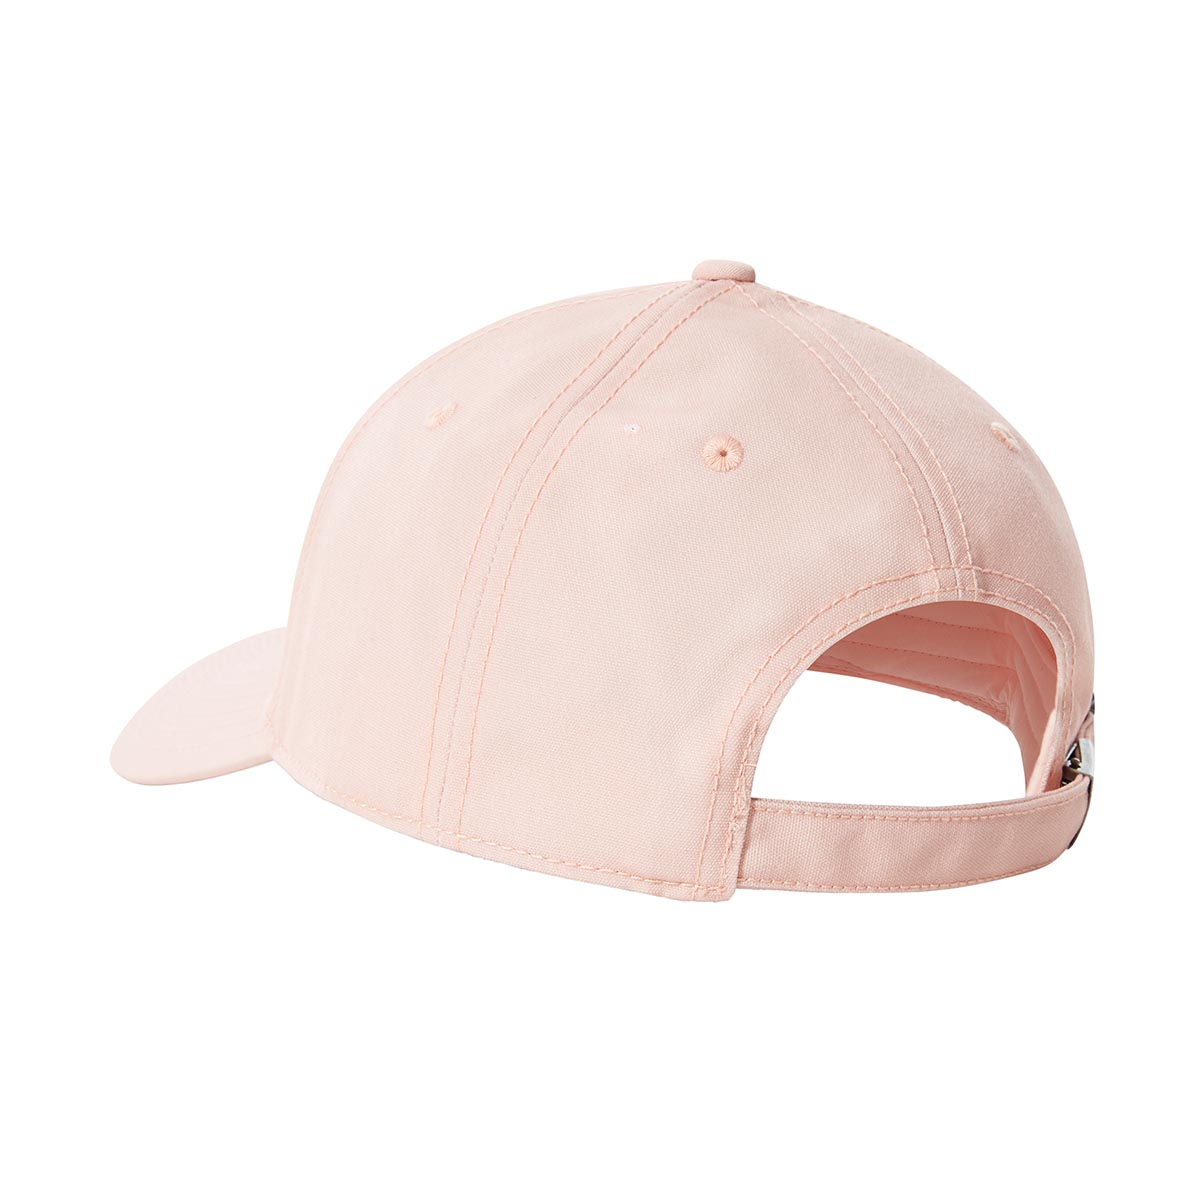 THE NORTH FACE - '66 CLASSIC HAT